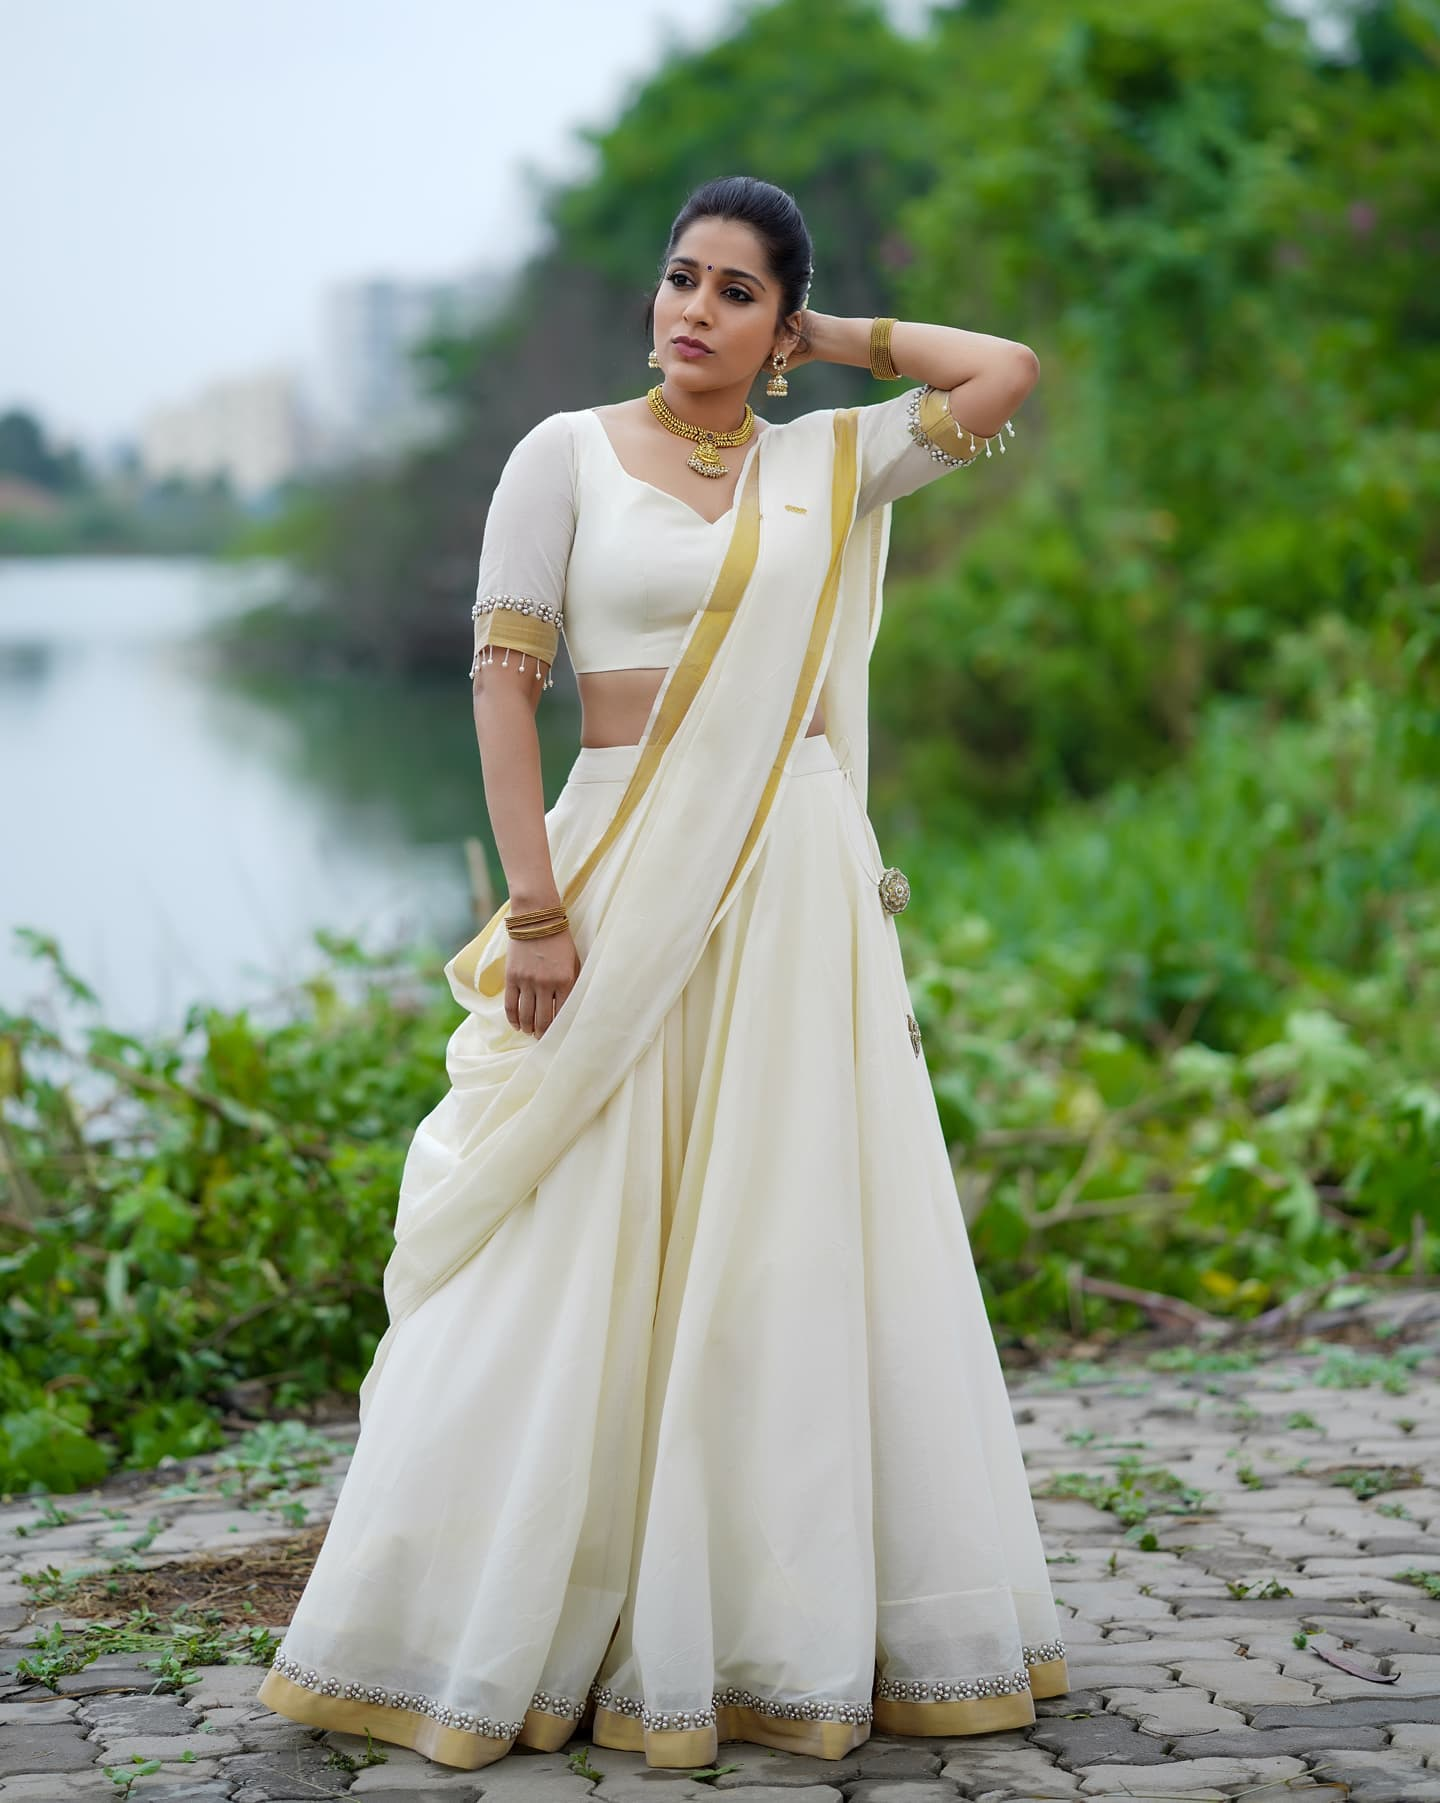 Gorgeous actress Rashmi Gautham in white halfsaree for Jabardasth. Outfit by Starry dreams by SHAMA . 2021-09-22